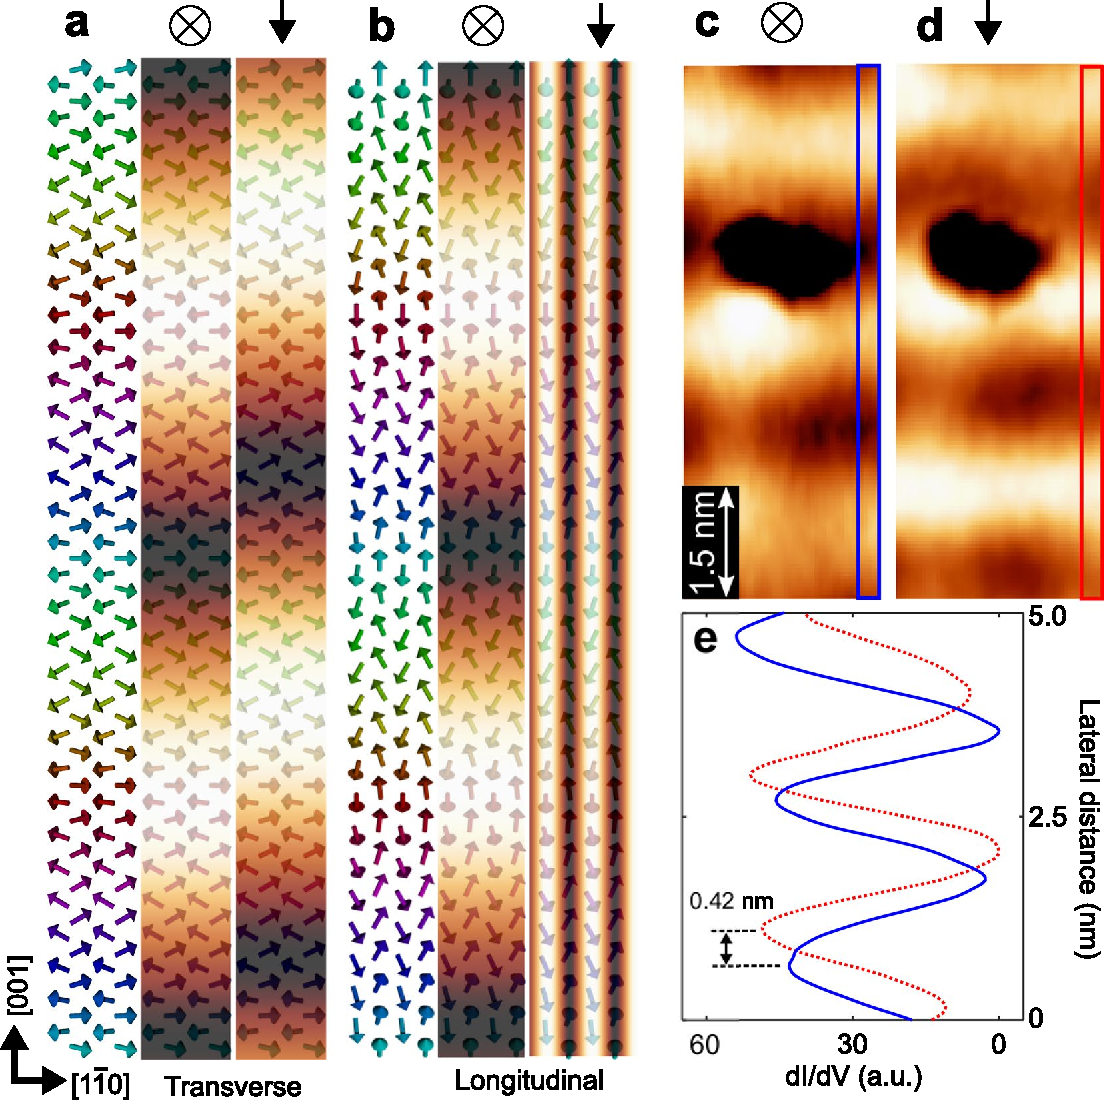 Figure 3. Simulated SP-STM images for Mn double-layer and experimental confirmation of a transverse conical spin spiral. (a,b) Schematic spin structures of a cycloidal and helical type rotation of Mn DL, respectively. Middle and right panels represent simulated spin-polarized signals with tips magnetized parallel to the out-of-plane and [001] directions, respectively. (c,d) Spin polarized dI/dV images taken with tips magnetized parallel to the out-of-plane and [001] directions, respectively. IT = 1 nA, VS = −50 mV. B⊥ = 2 T for (c) and B = 1 T for (d). (e) Blue solid and red dotted line indicate the cross-sectional profiles taken in the boxed areas in (c) and (d), respectively.